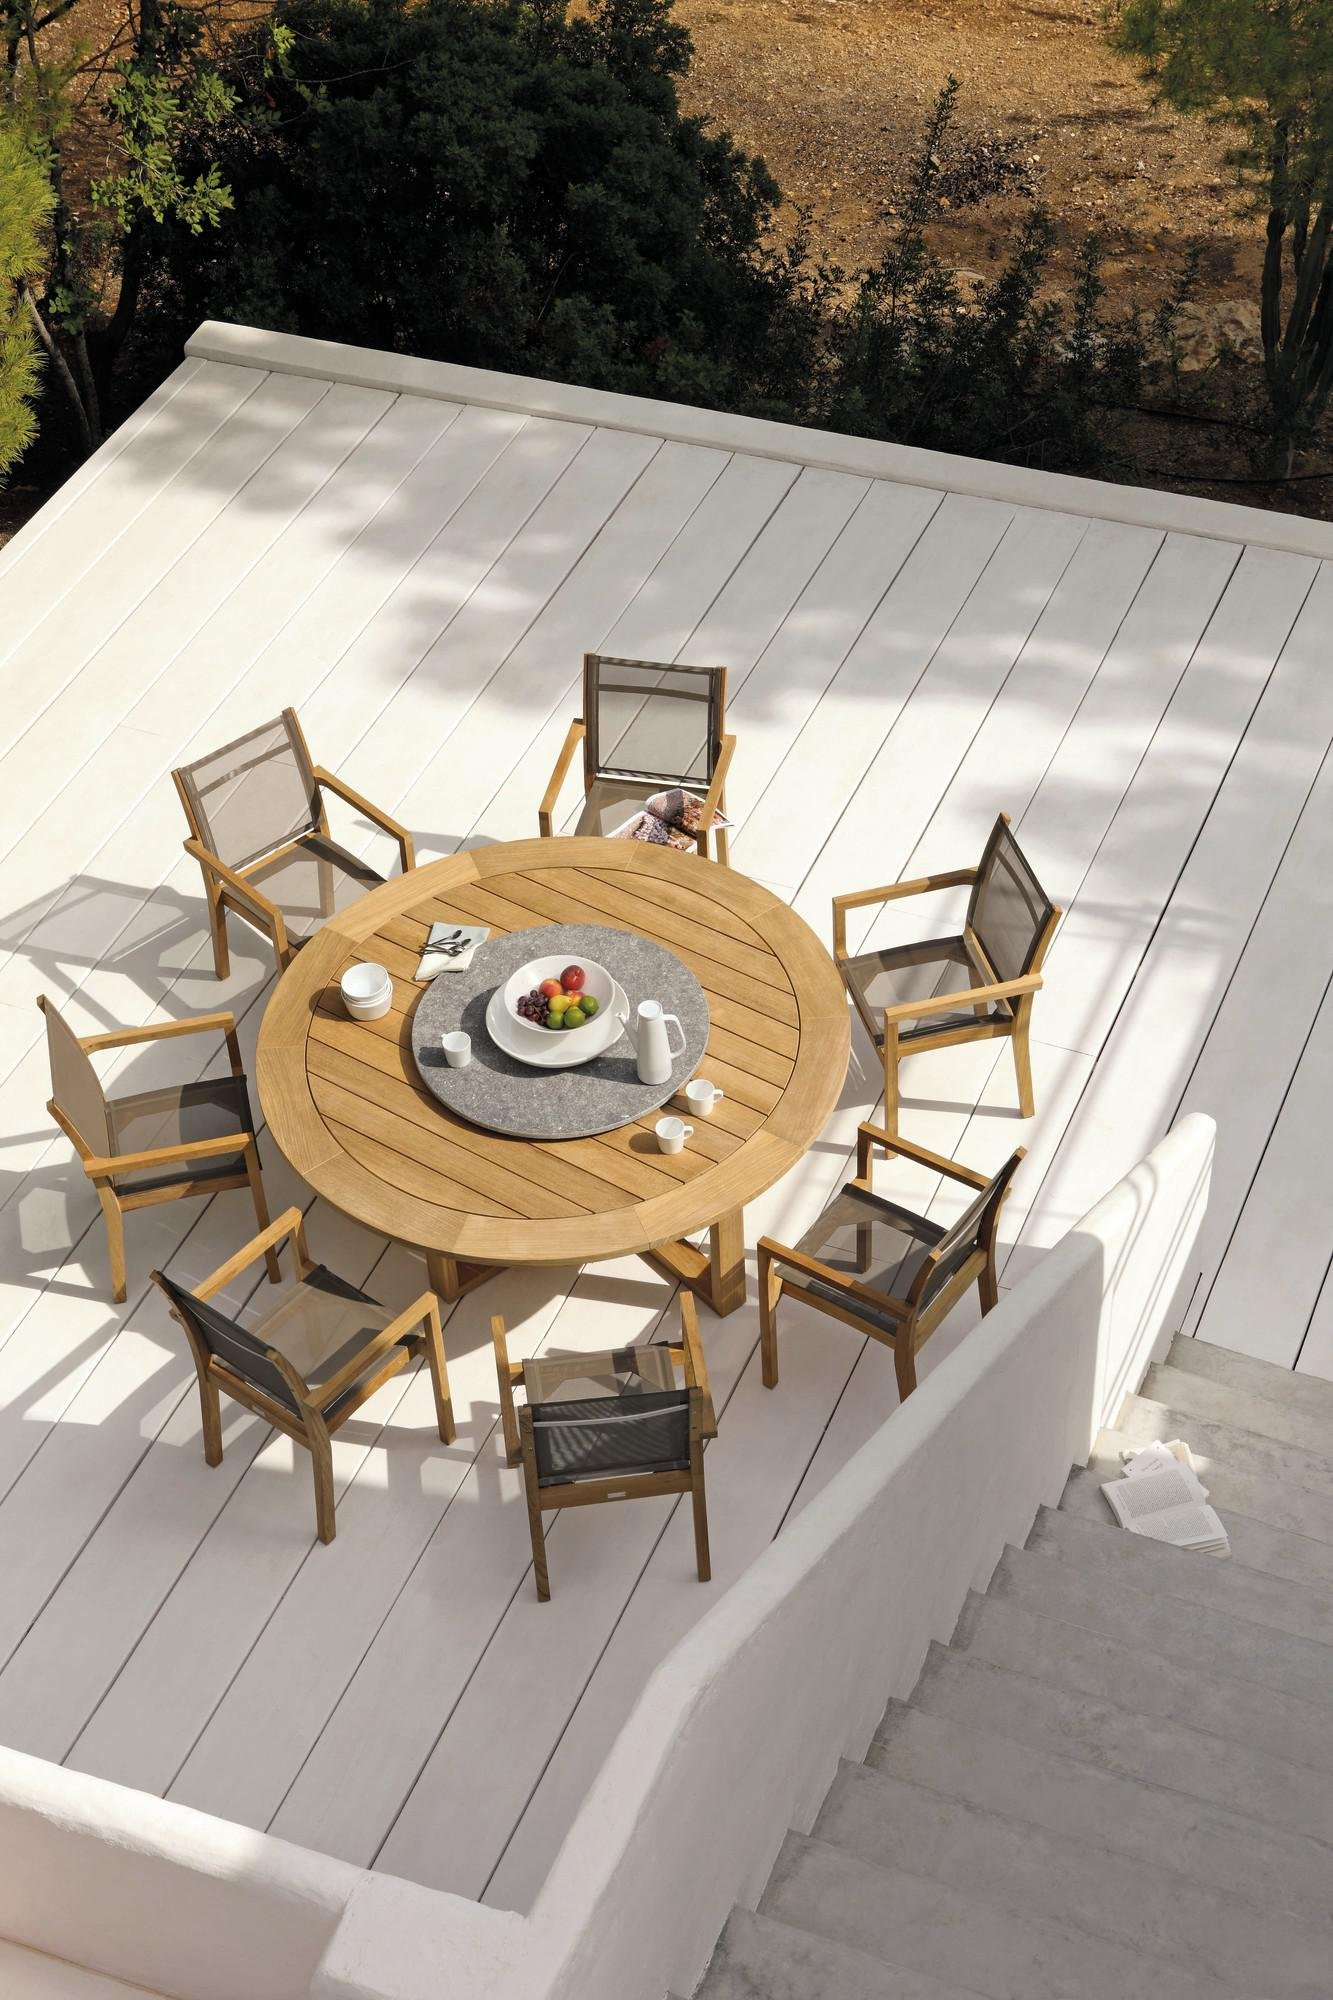 Siena Dining Chair from Manutti, designed by Stephane De Winter